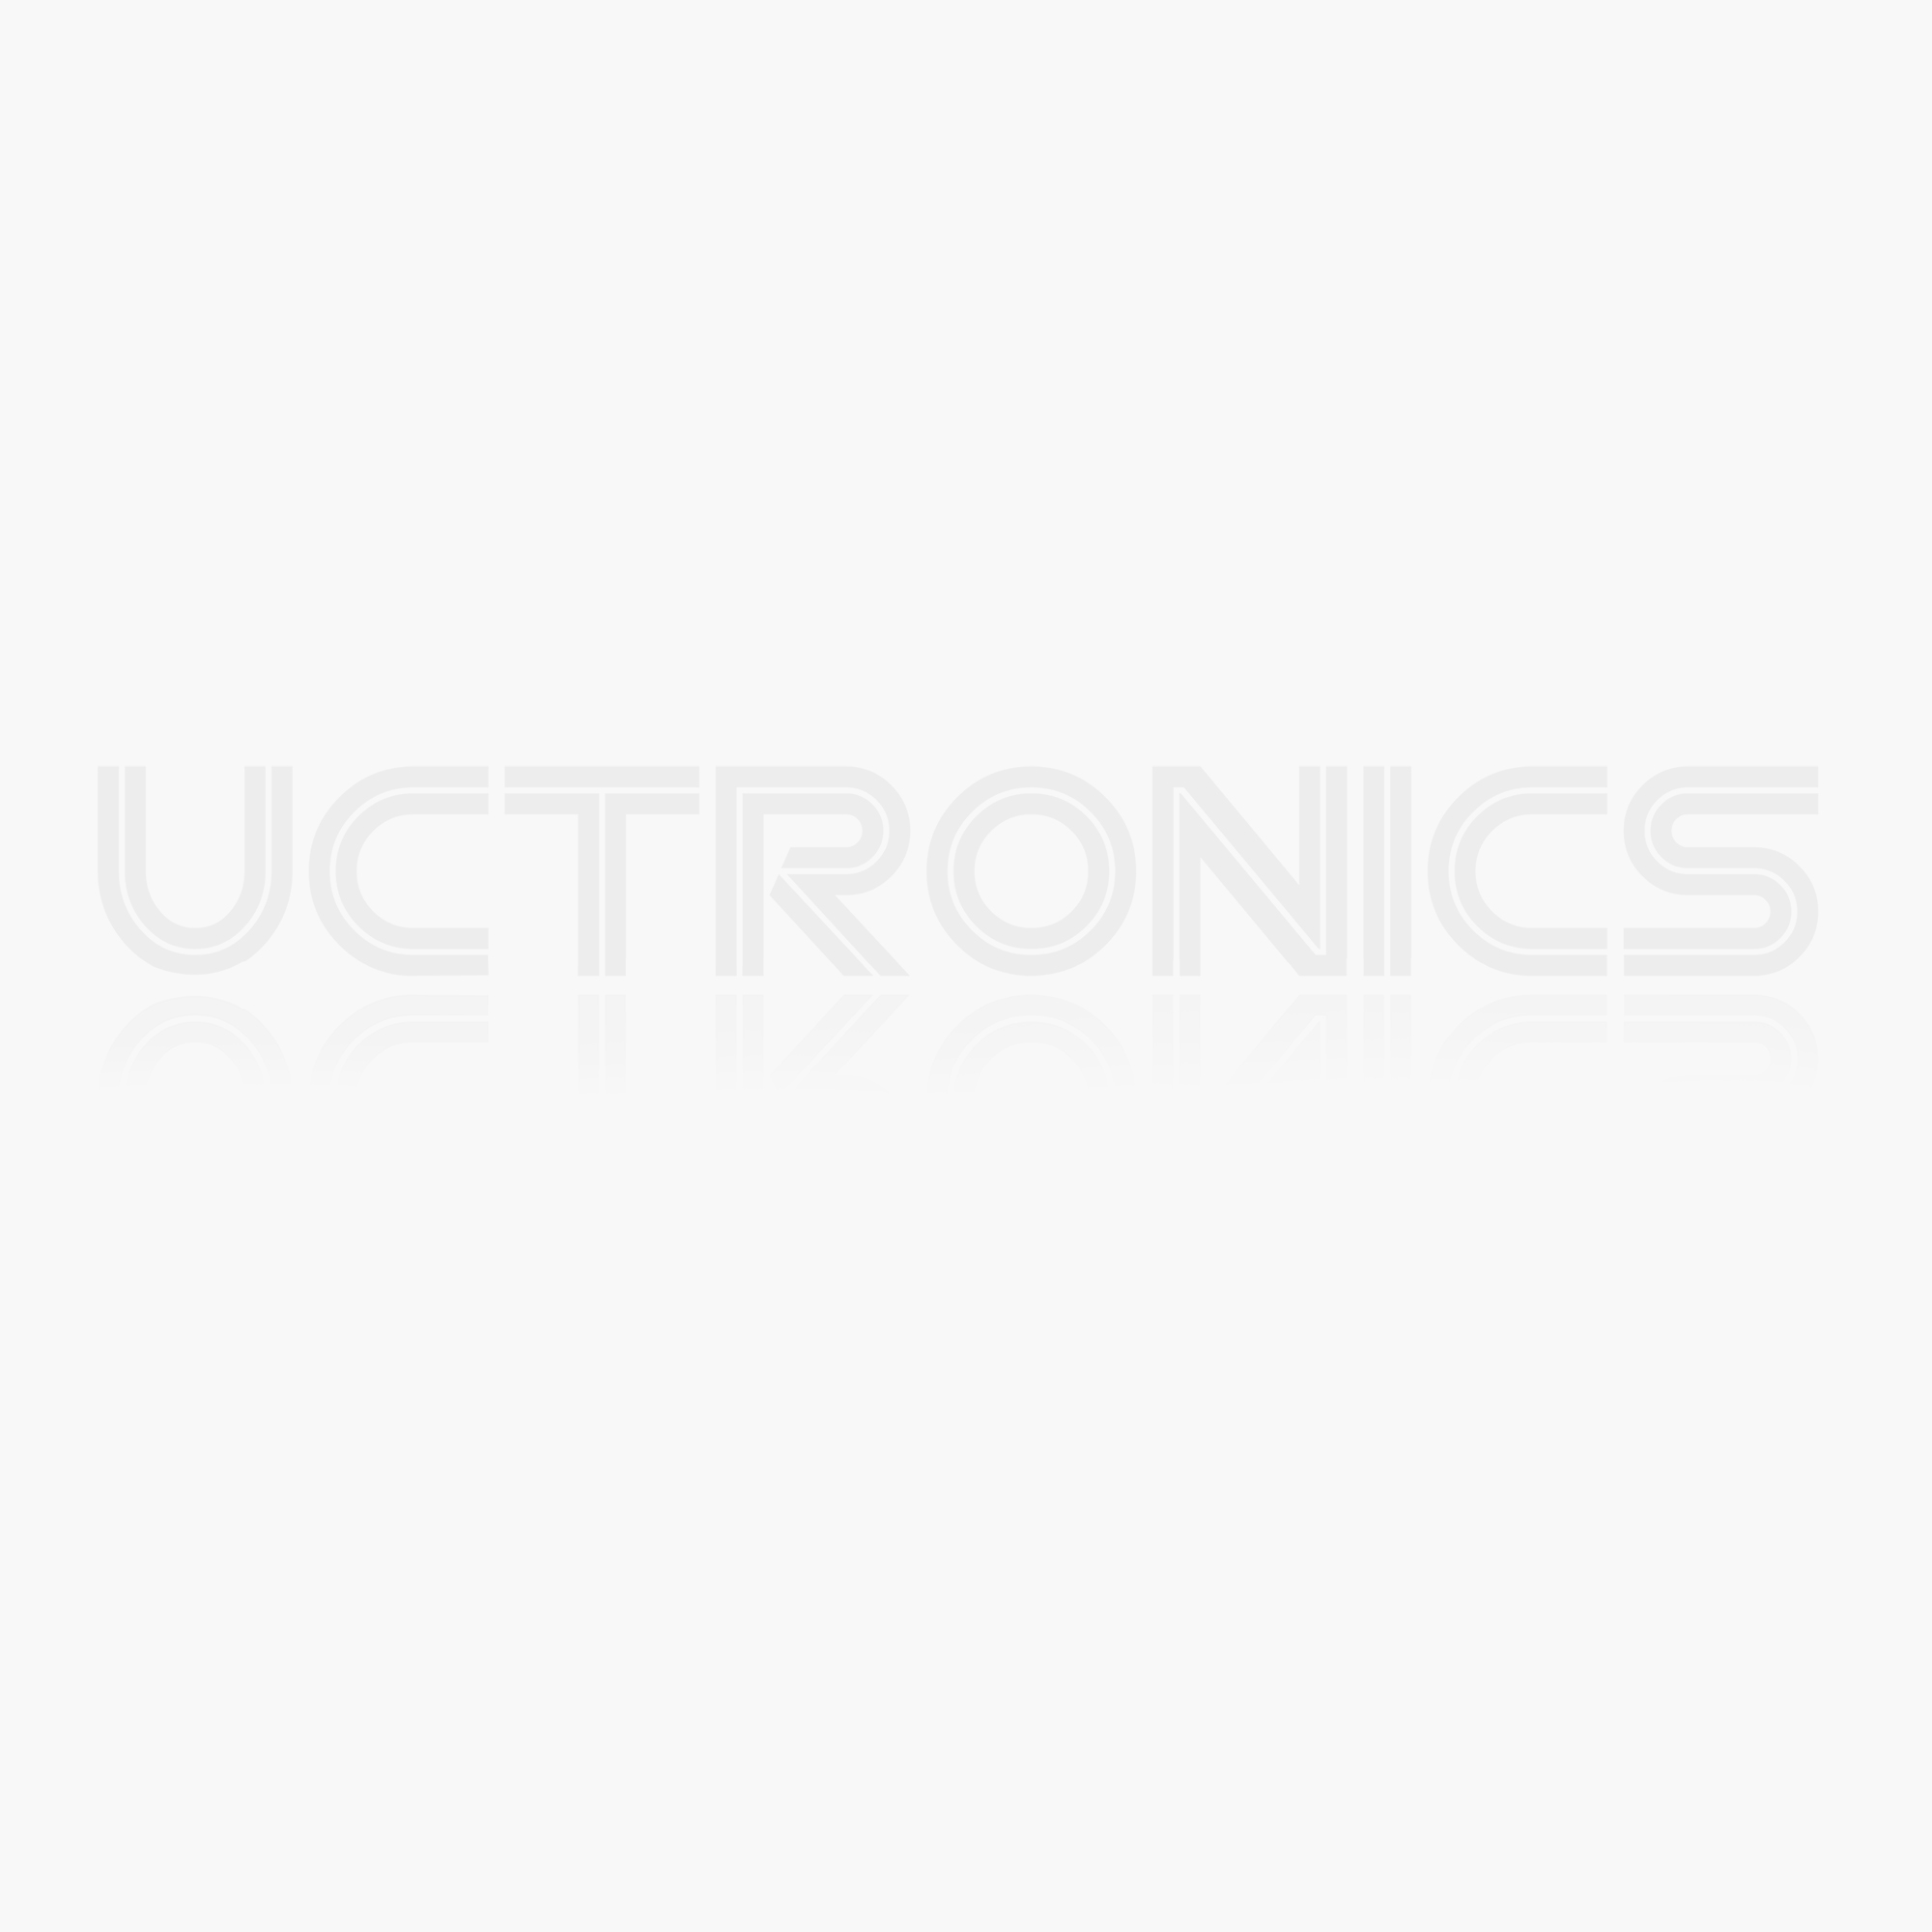 UCTRONICS PoE HAT for Raspberry Pi 4, UCTRONICS Mini Power over Ethernet Expansion Board for Raspberry Pi 4 B 3 B+